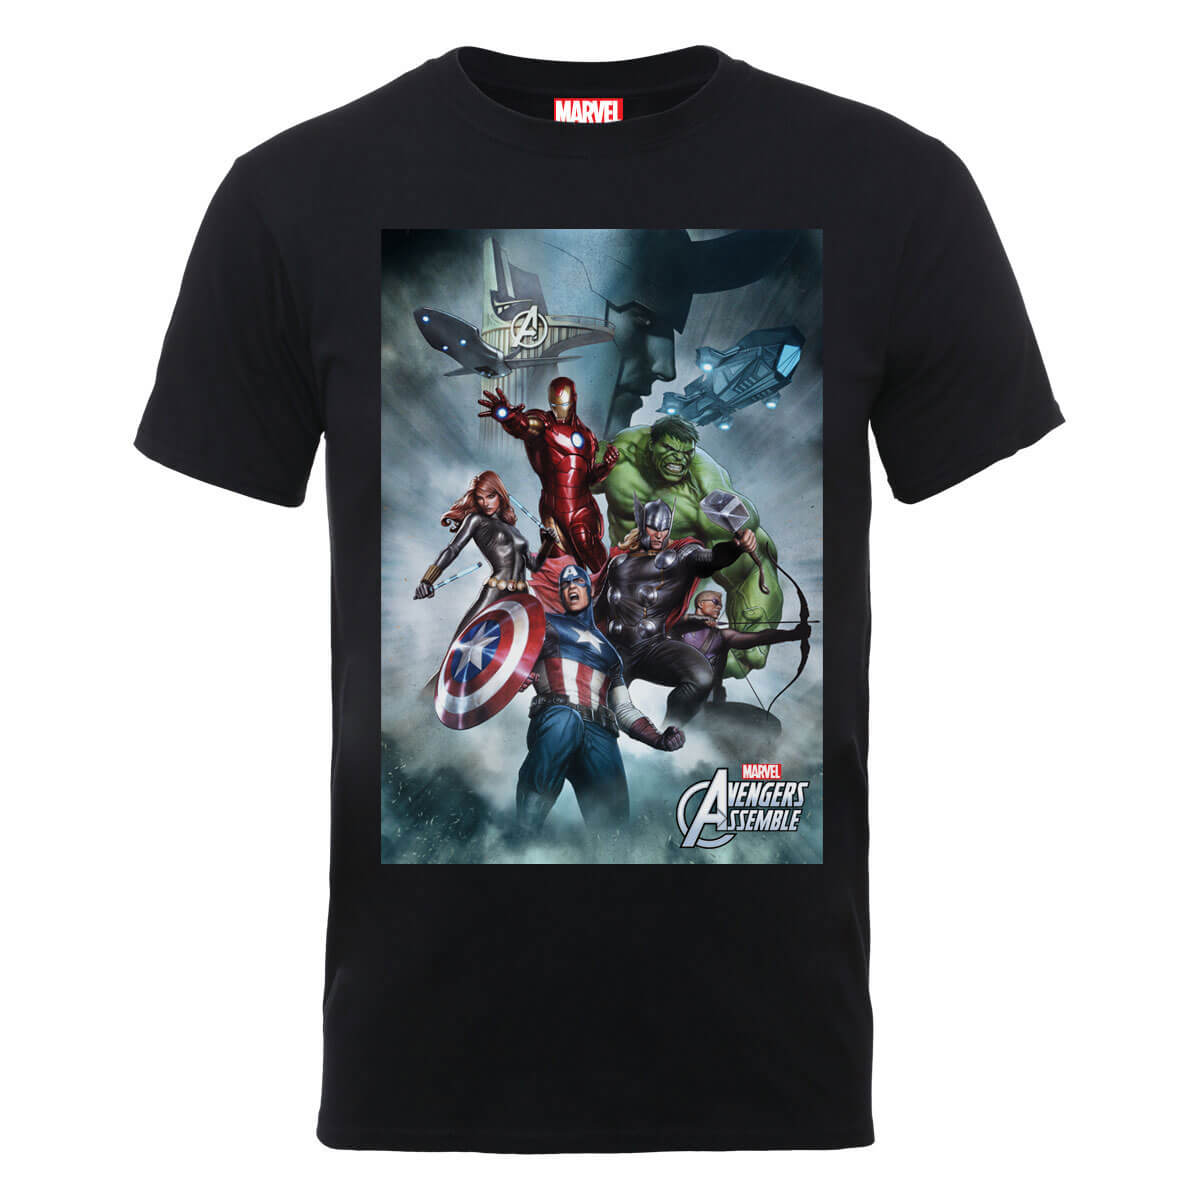 Marvel Avengers Team Montage T-Shirt - Black